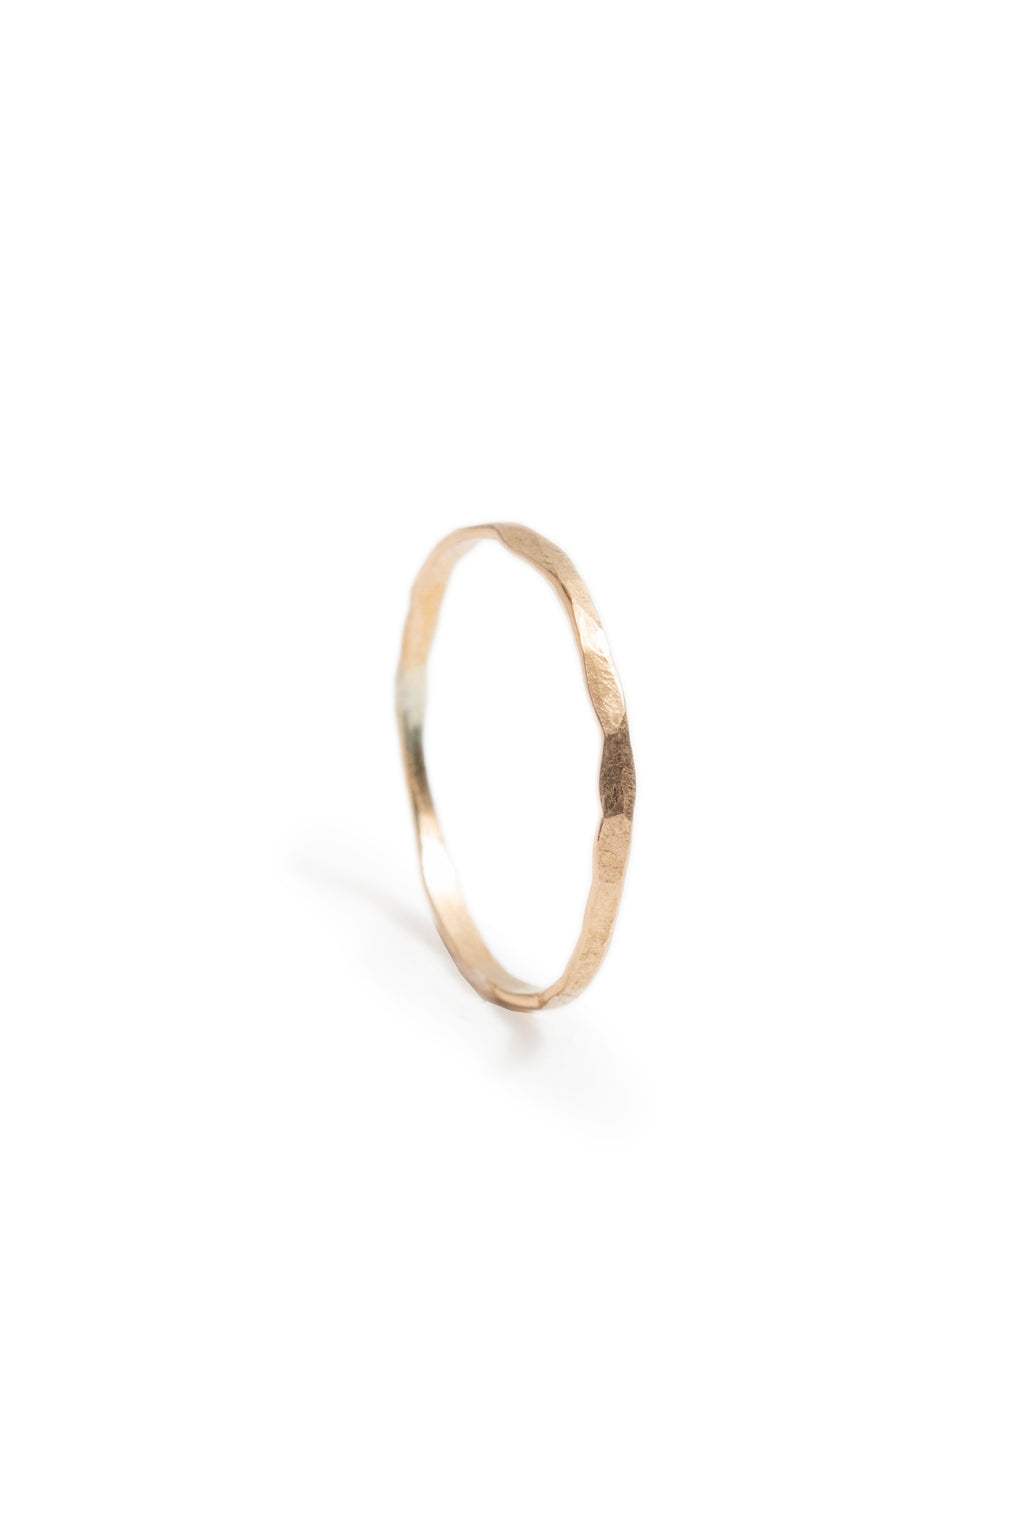 Tiny 14K Gold Fill Hammered Stacking Ring